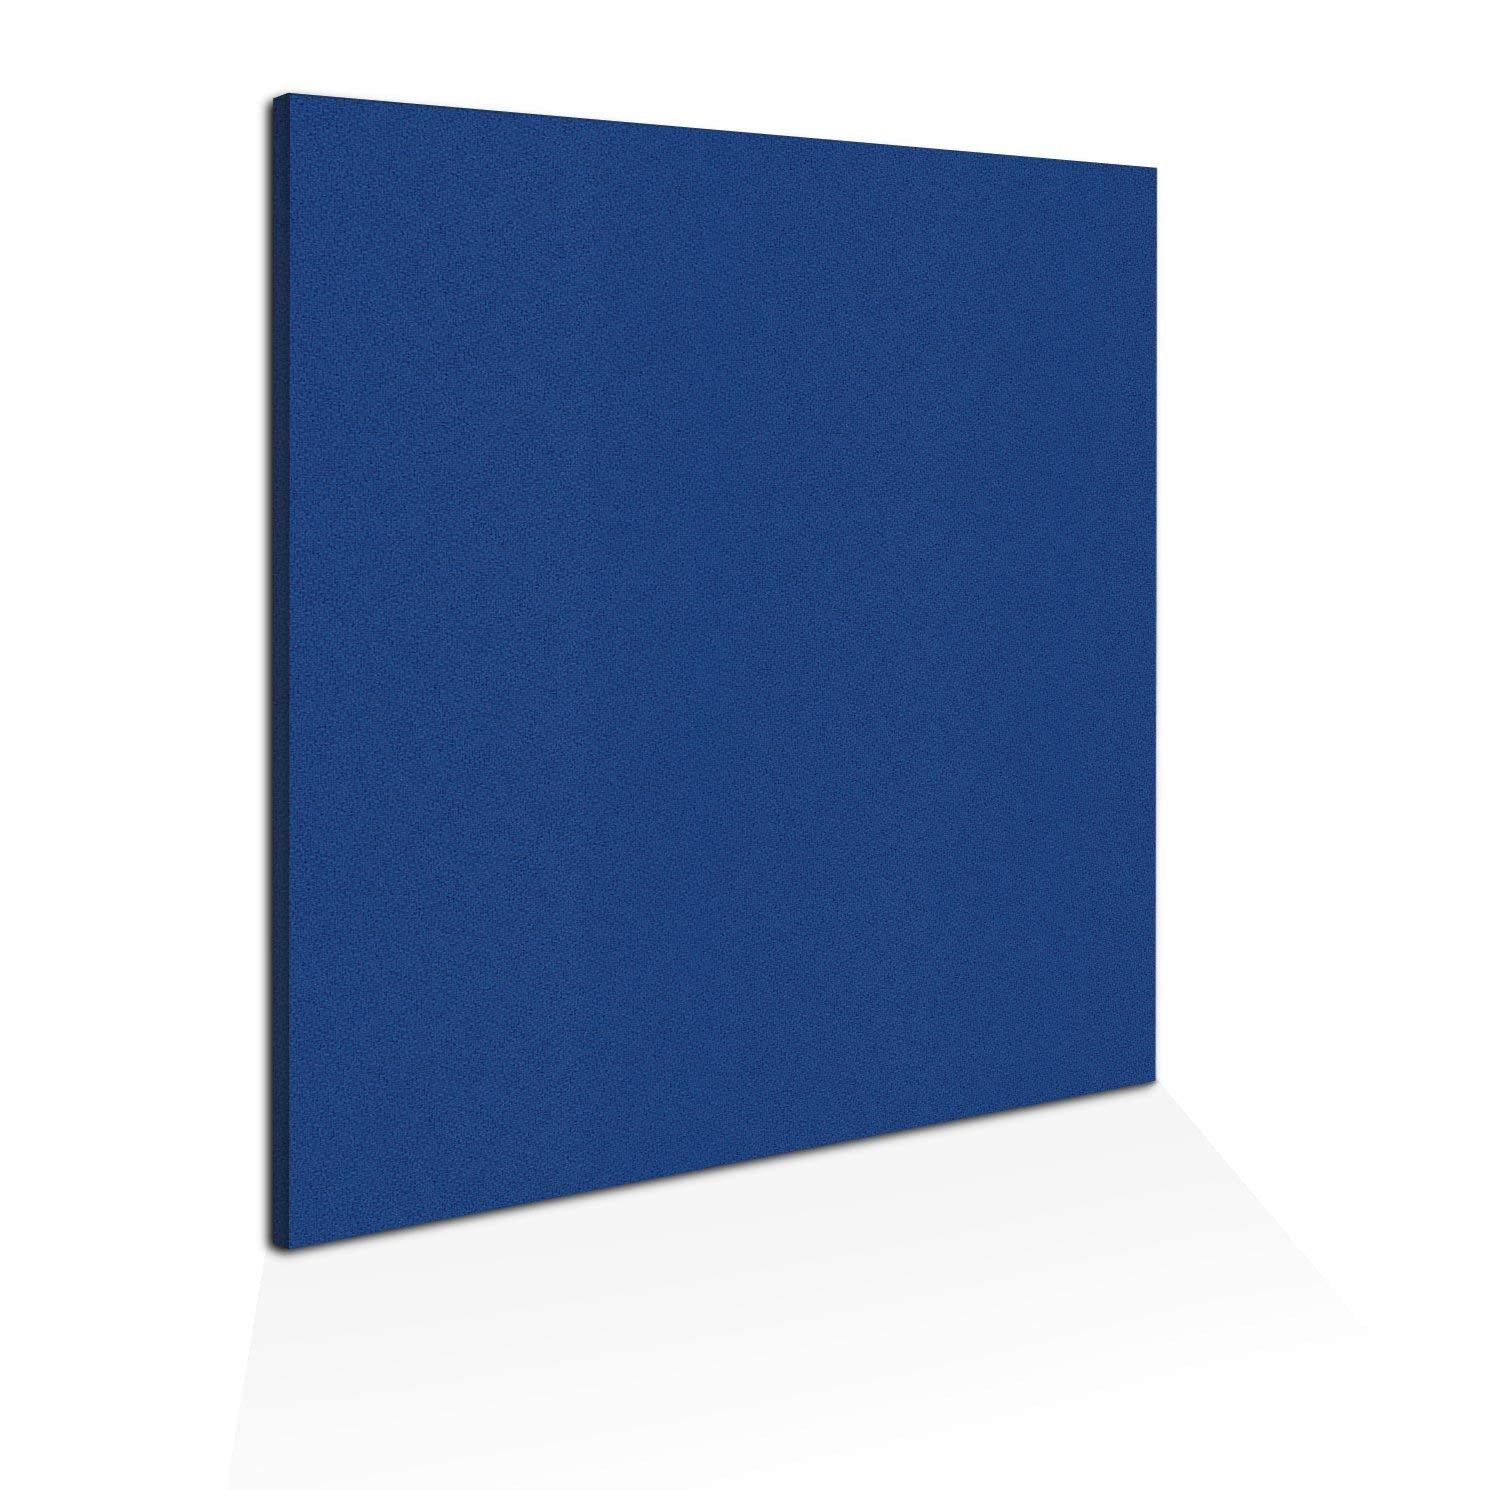 "ADW Acoustic Panels Square - 24"" X 24"" X 1"""